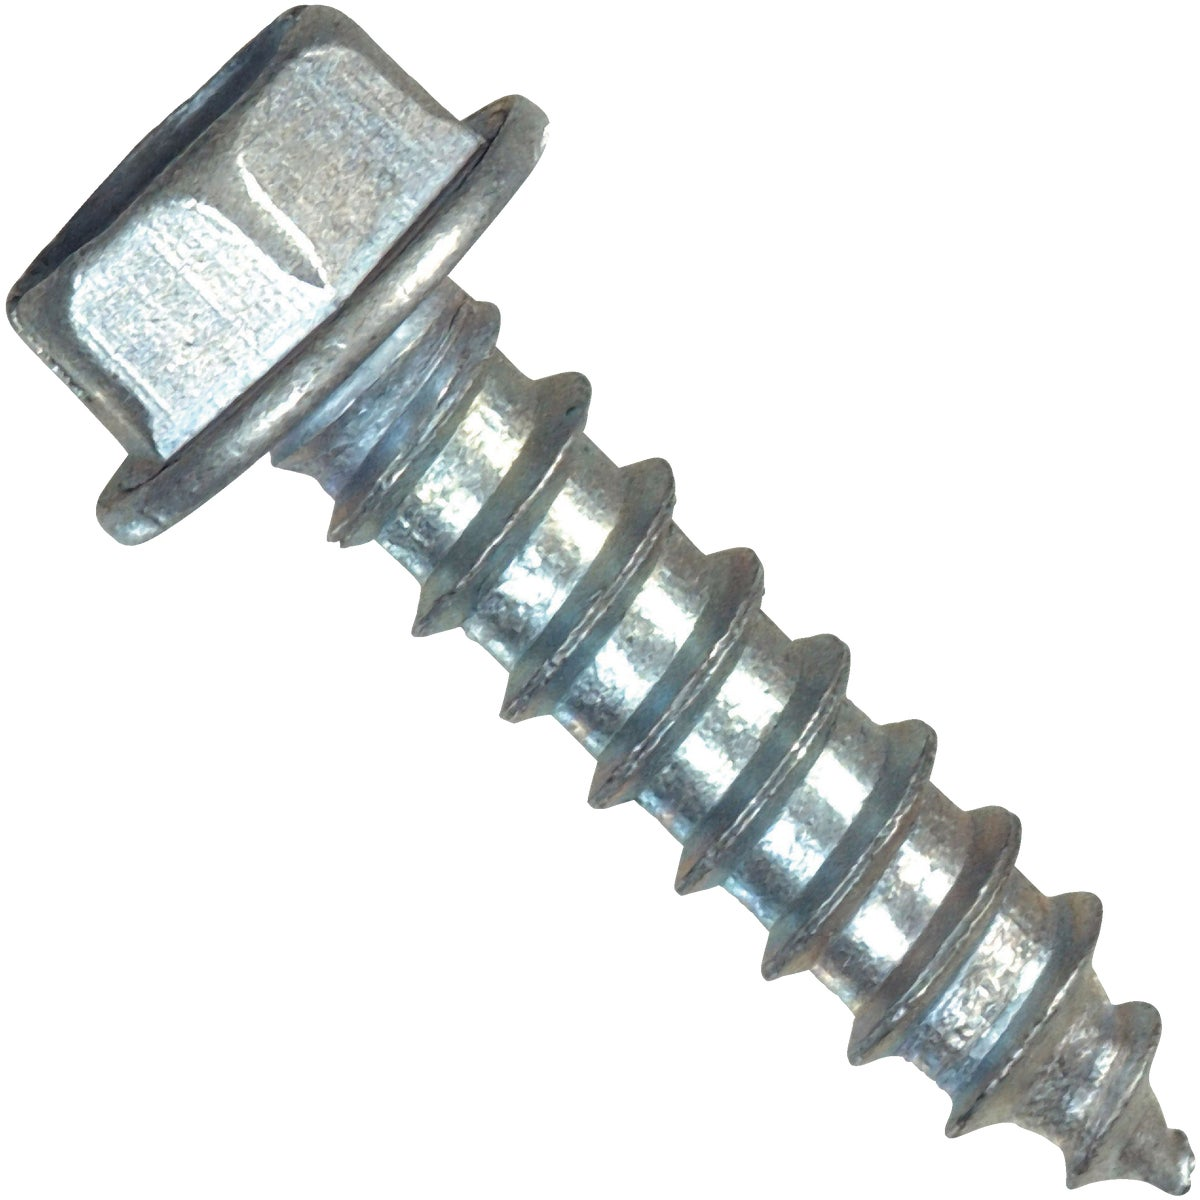 12X1-1/2 HWH ST MT SCREW - 70322 by Hillman Fastener